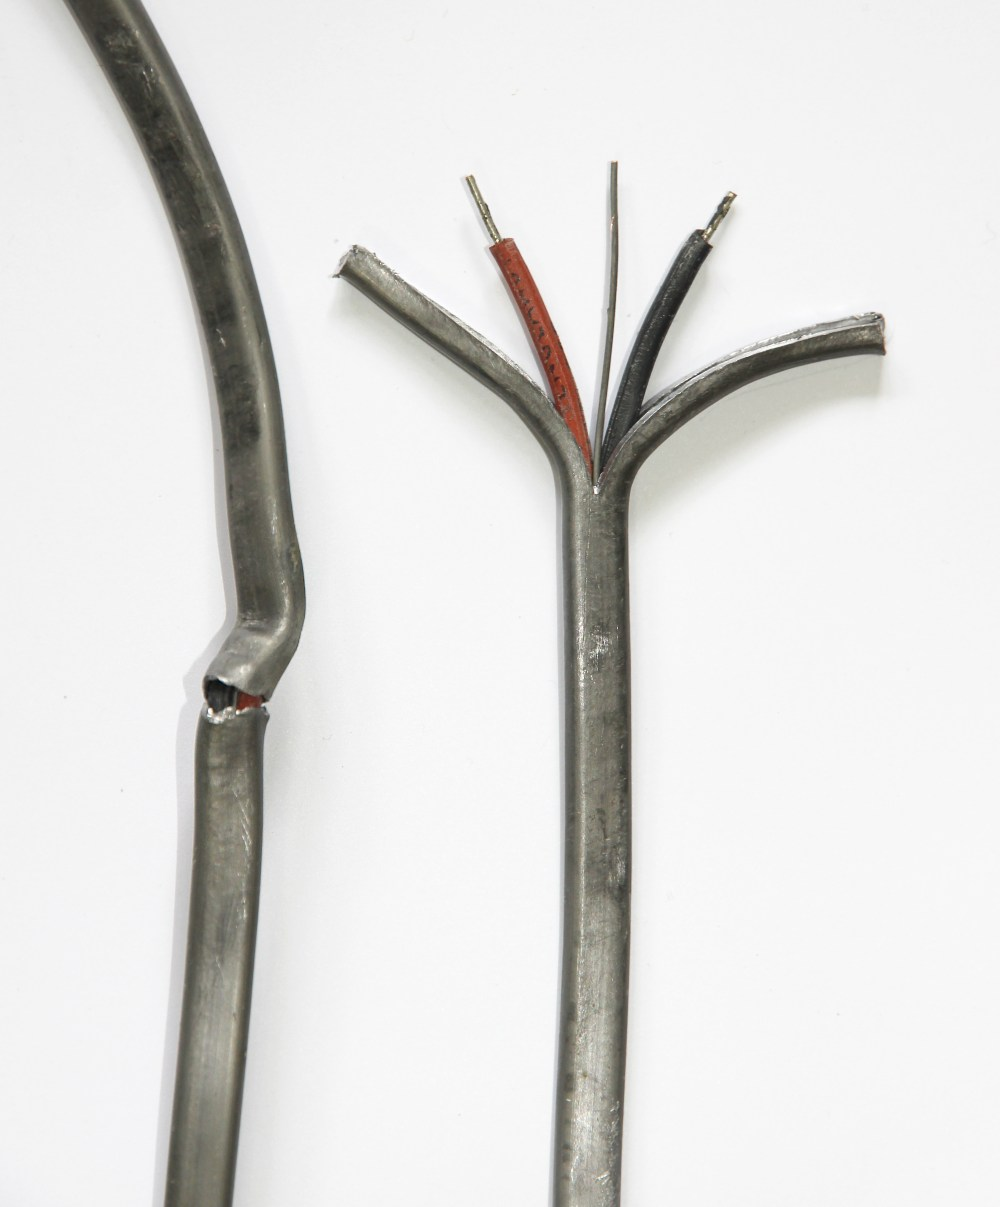 medium resolution of file lead cased electrical wire from a circa 1912 house on southern england jpg